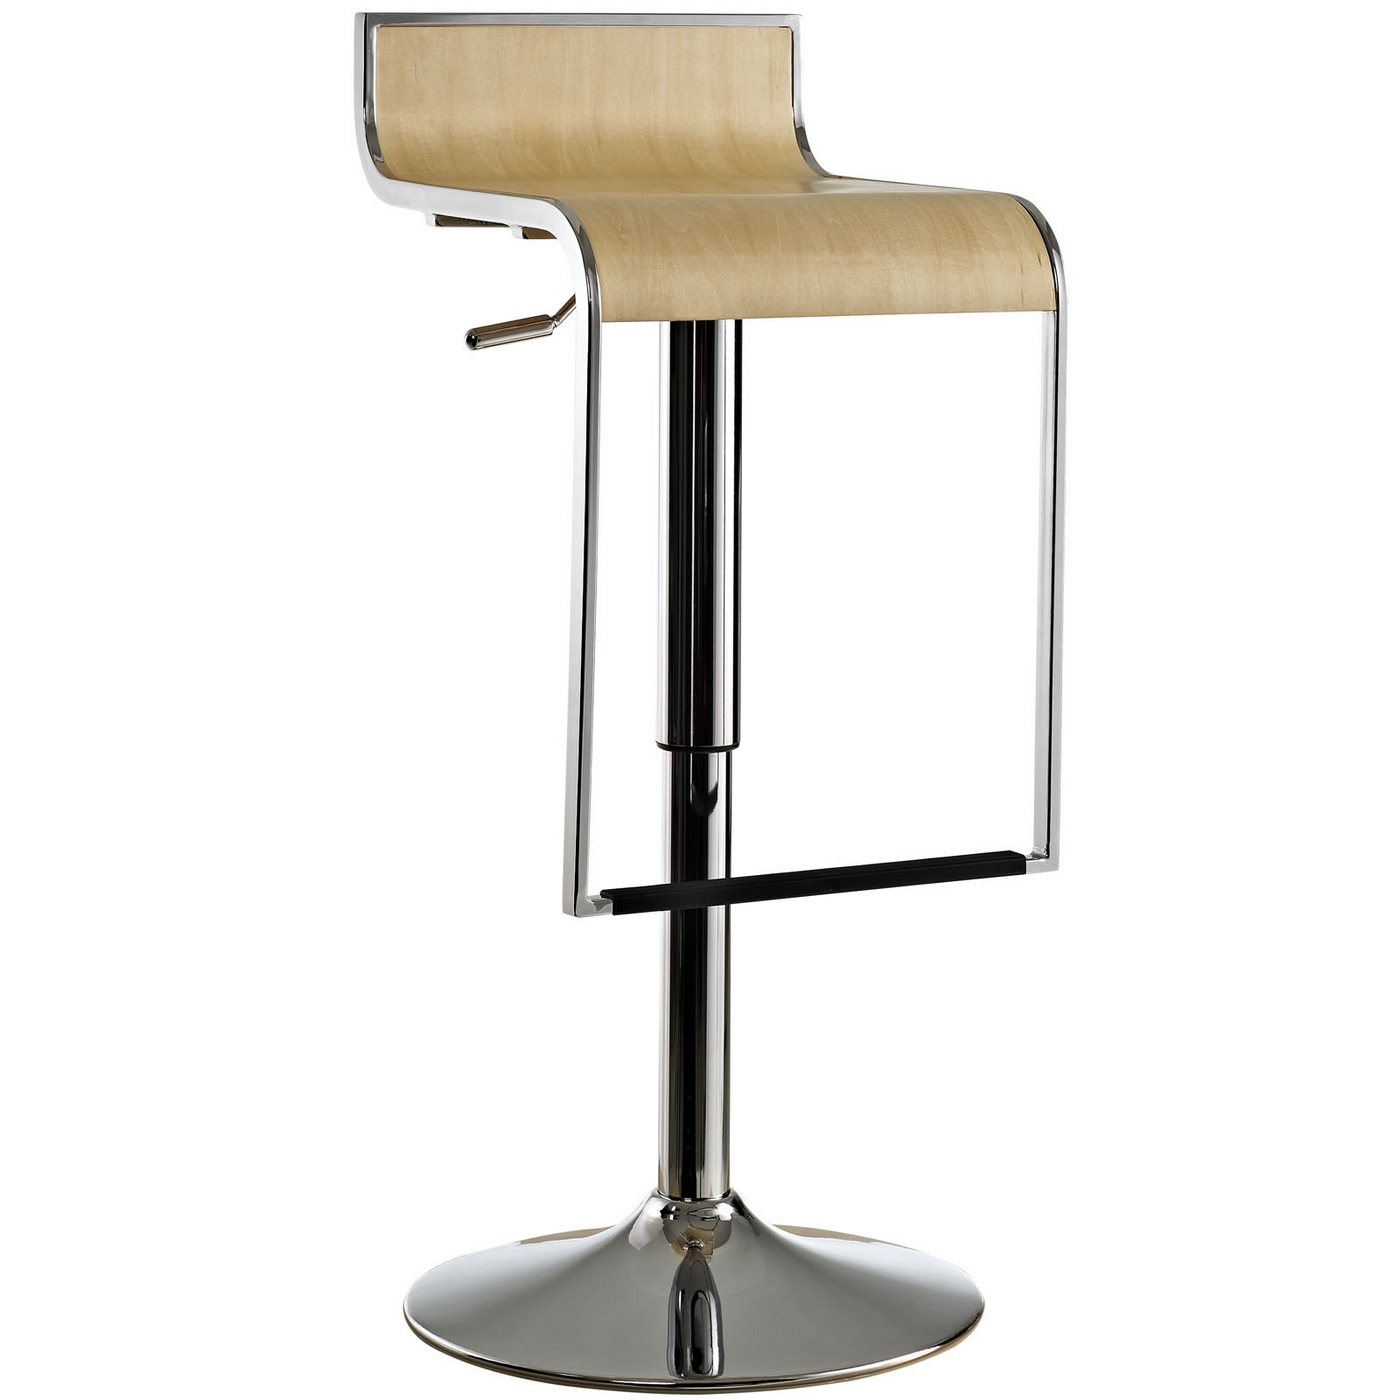 Lem Modernistic Adjustable Wood Bar Stool W Chrome Frame